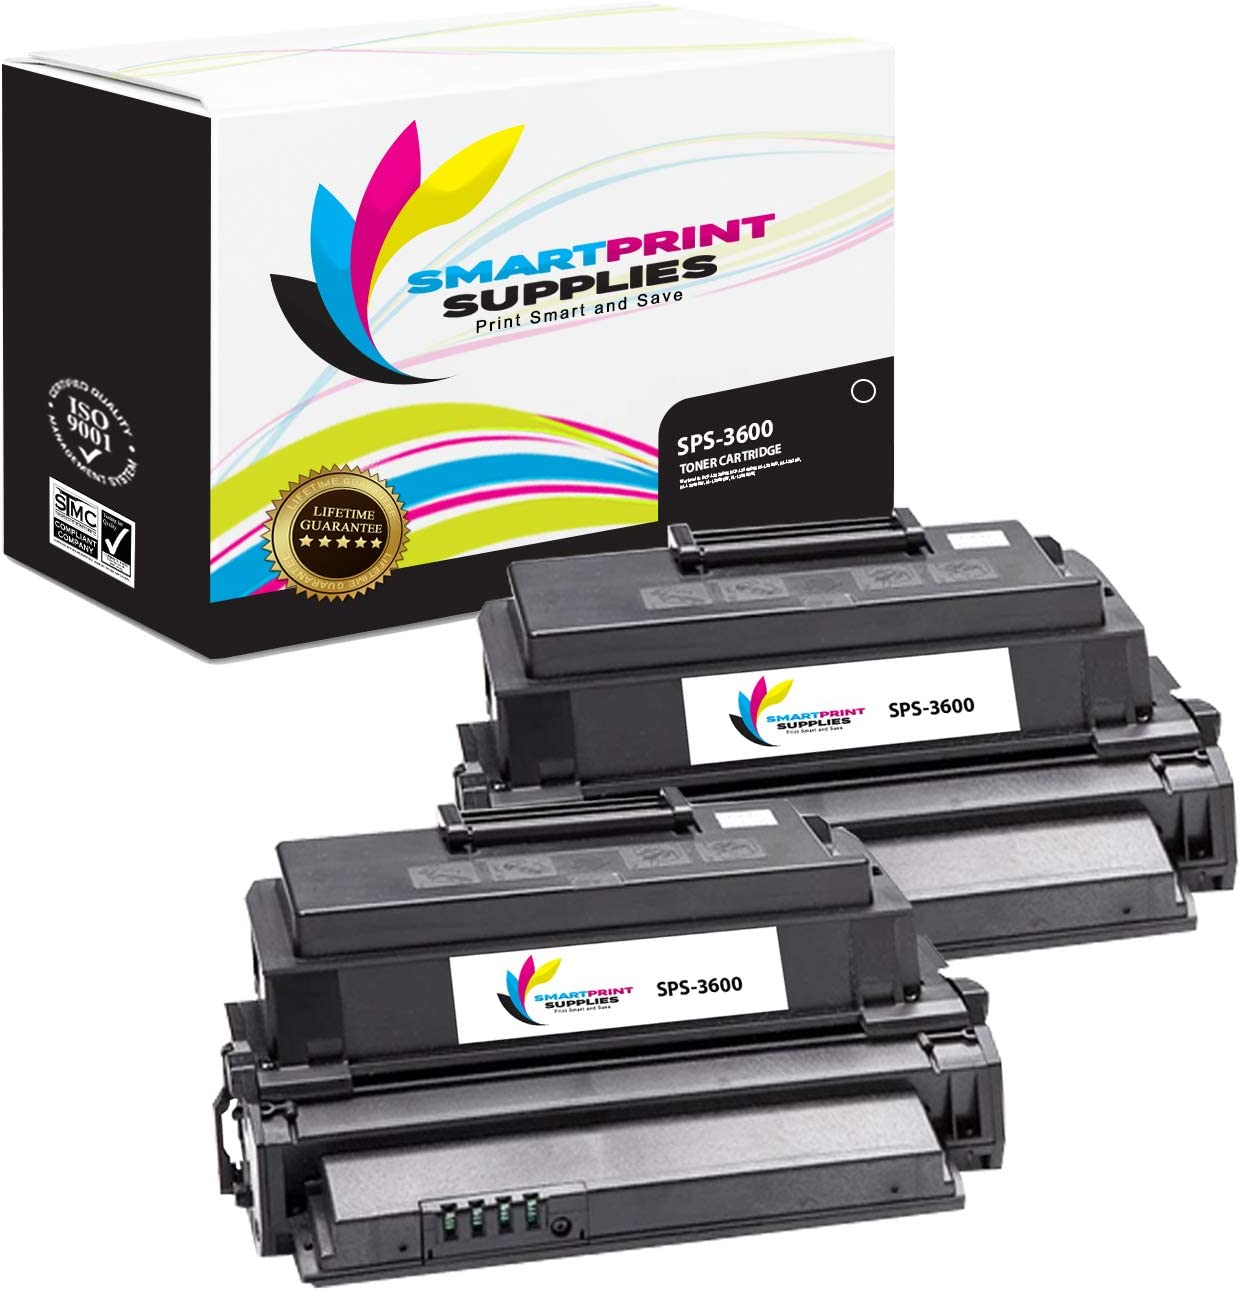 2 Pack Smart Print Supplies Compatible 106R01371 Black High Yield Toner Cartridge Replacement for Xerox Phaser 3600 Printers 14,000 Pages